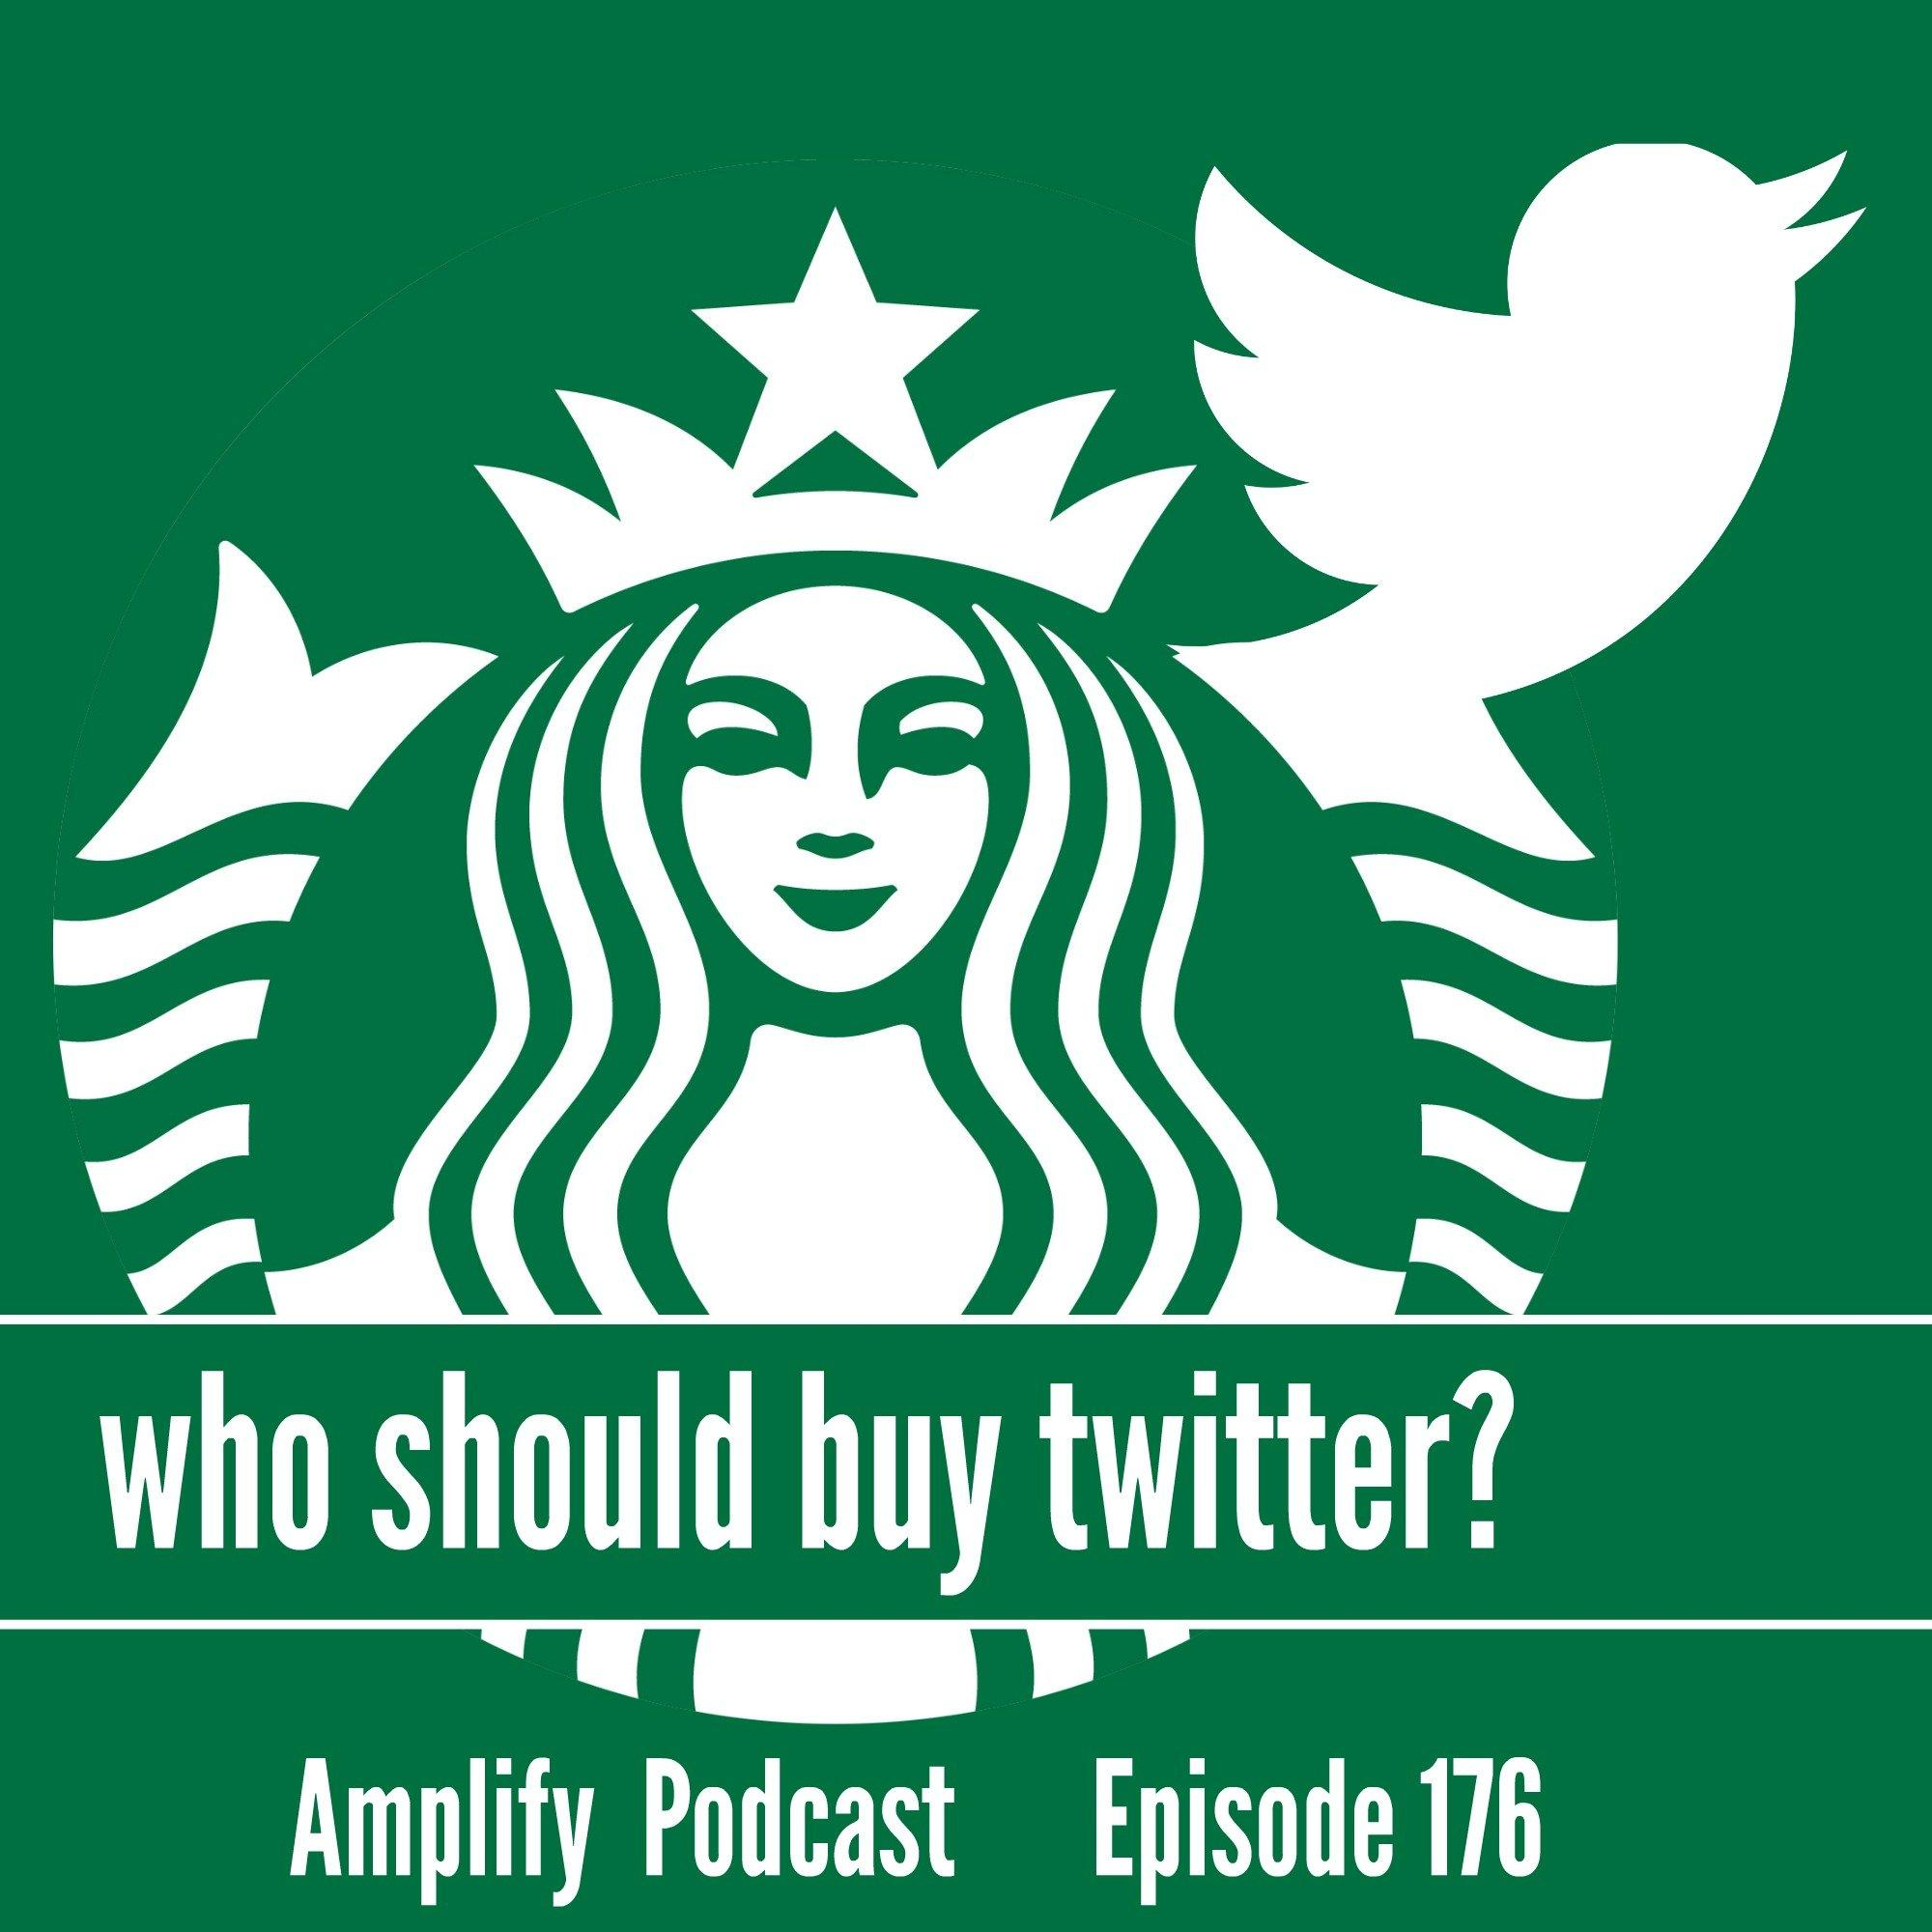 Who Should Buy Twitter?